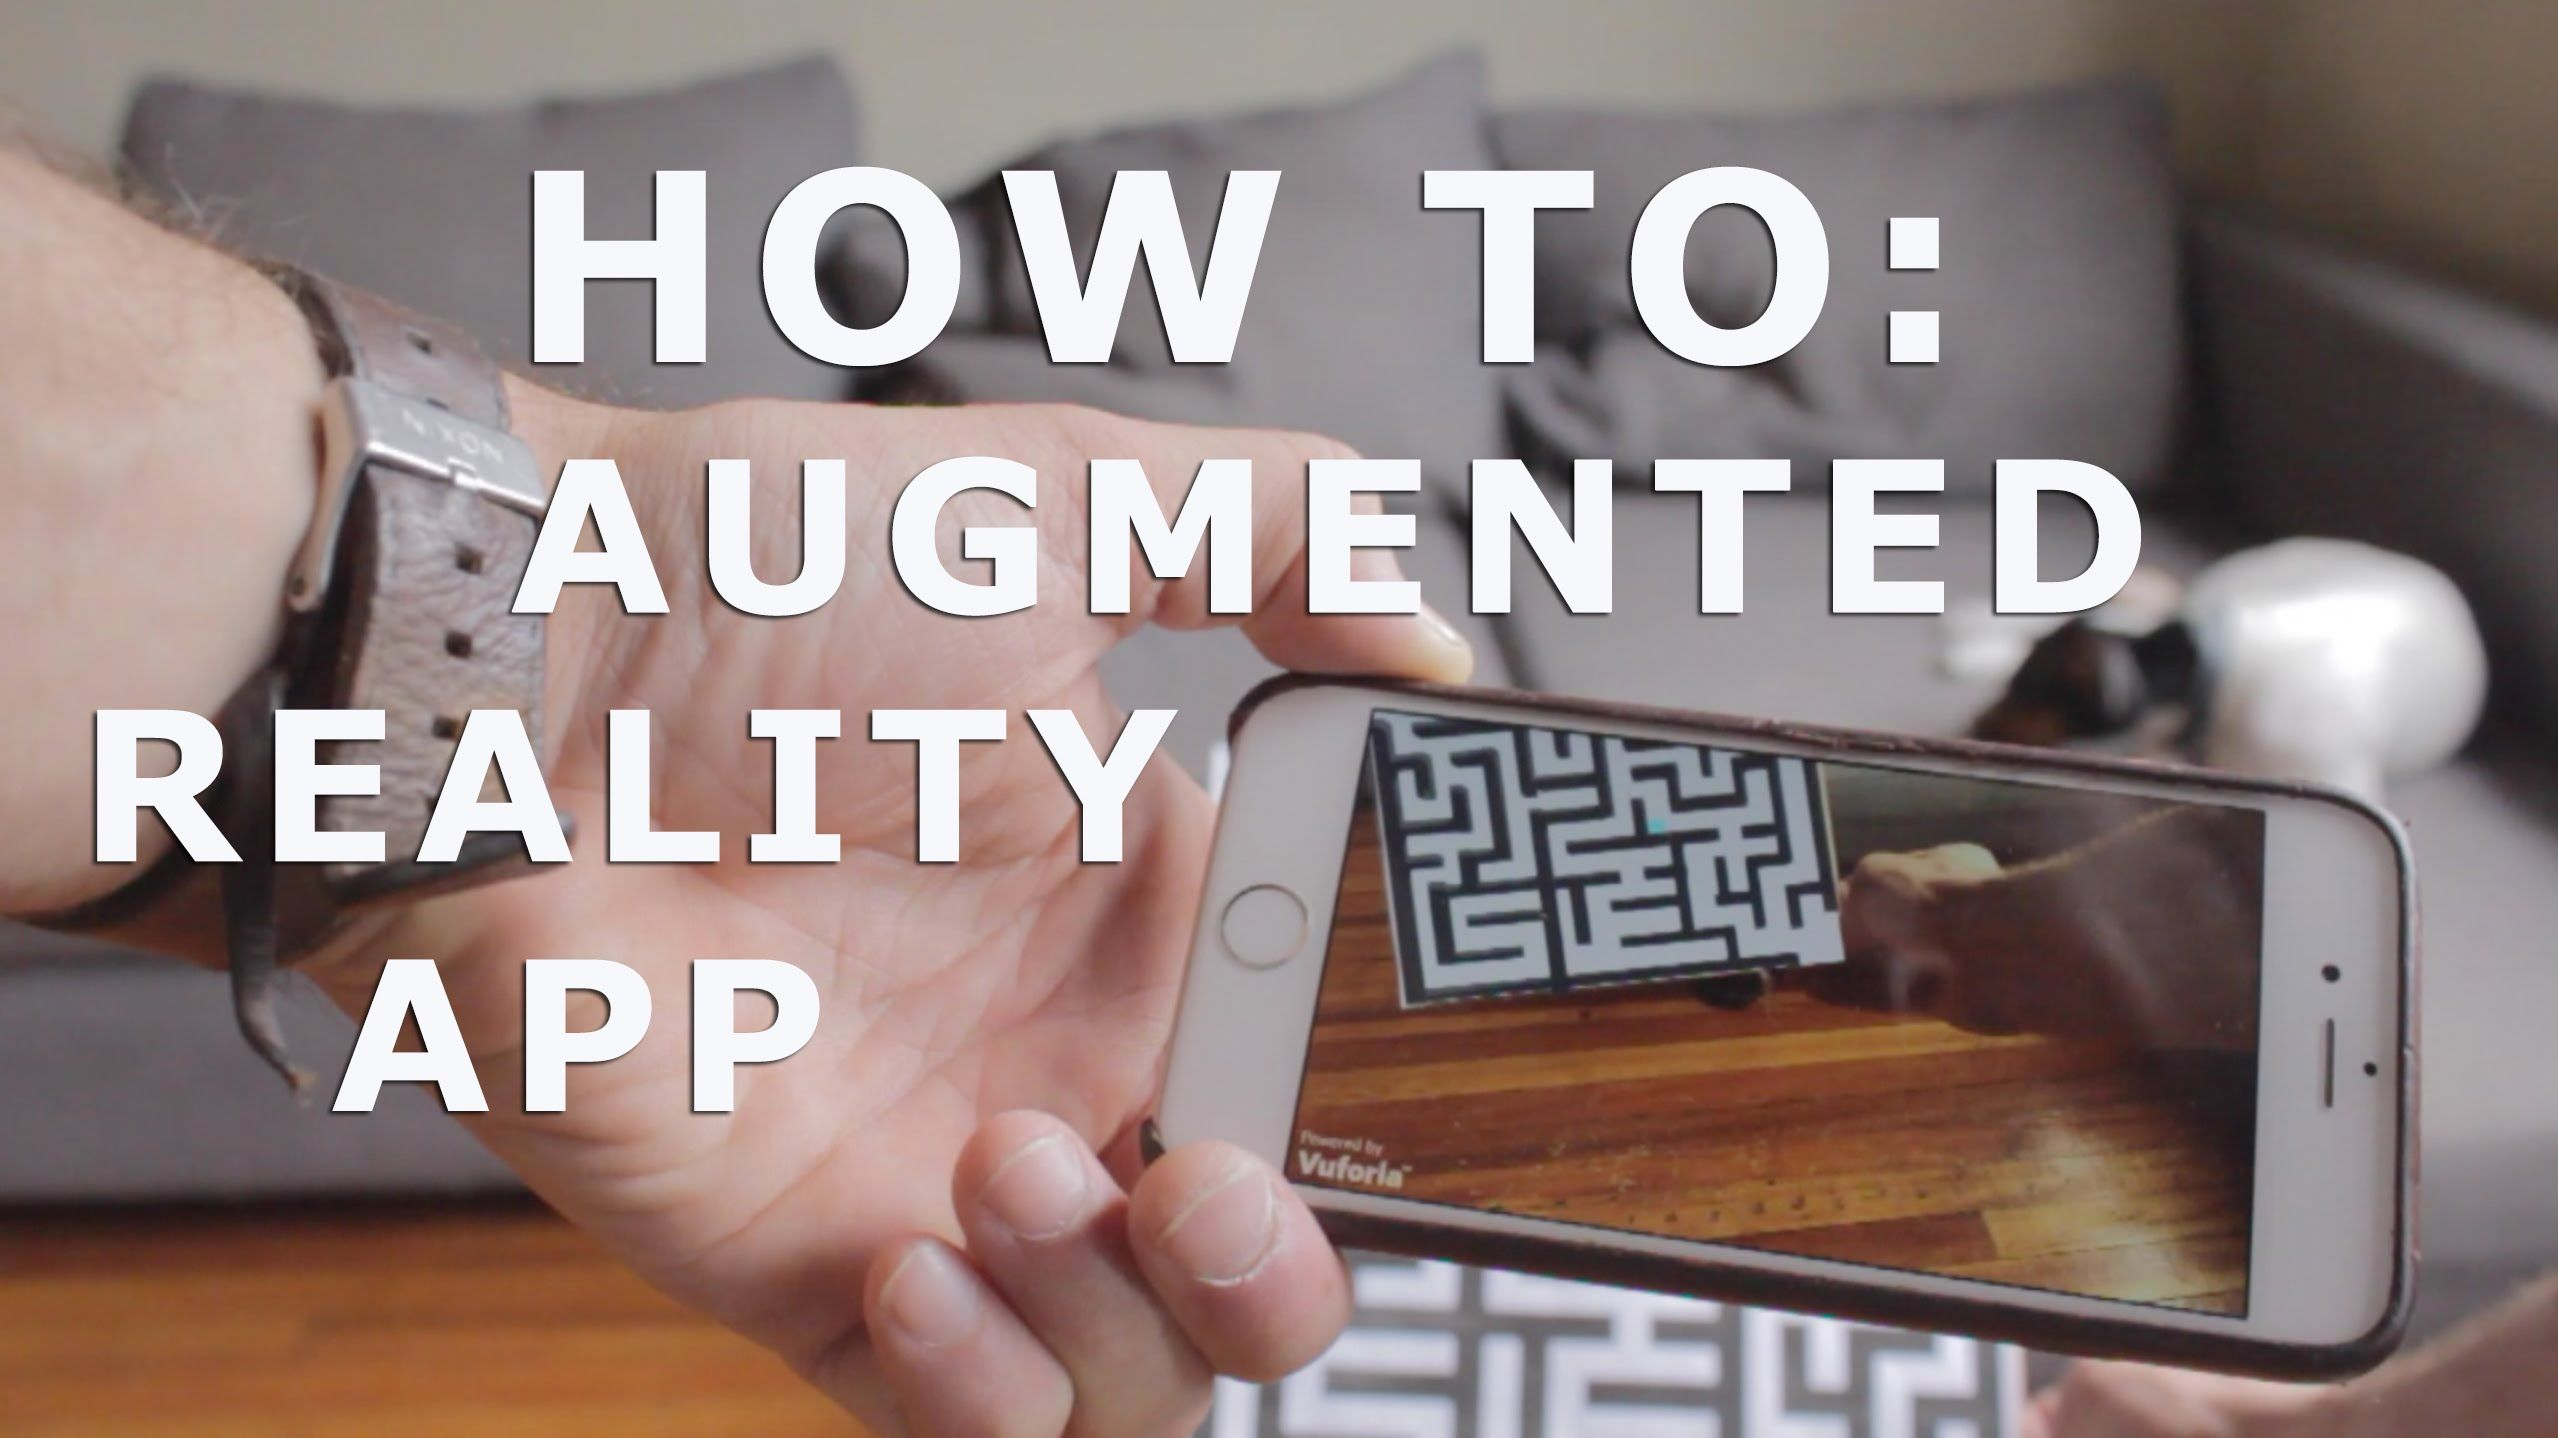 This tutorial shows you how to make an augmented reality app